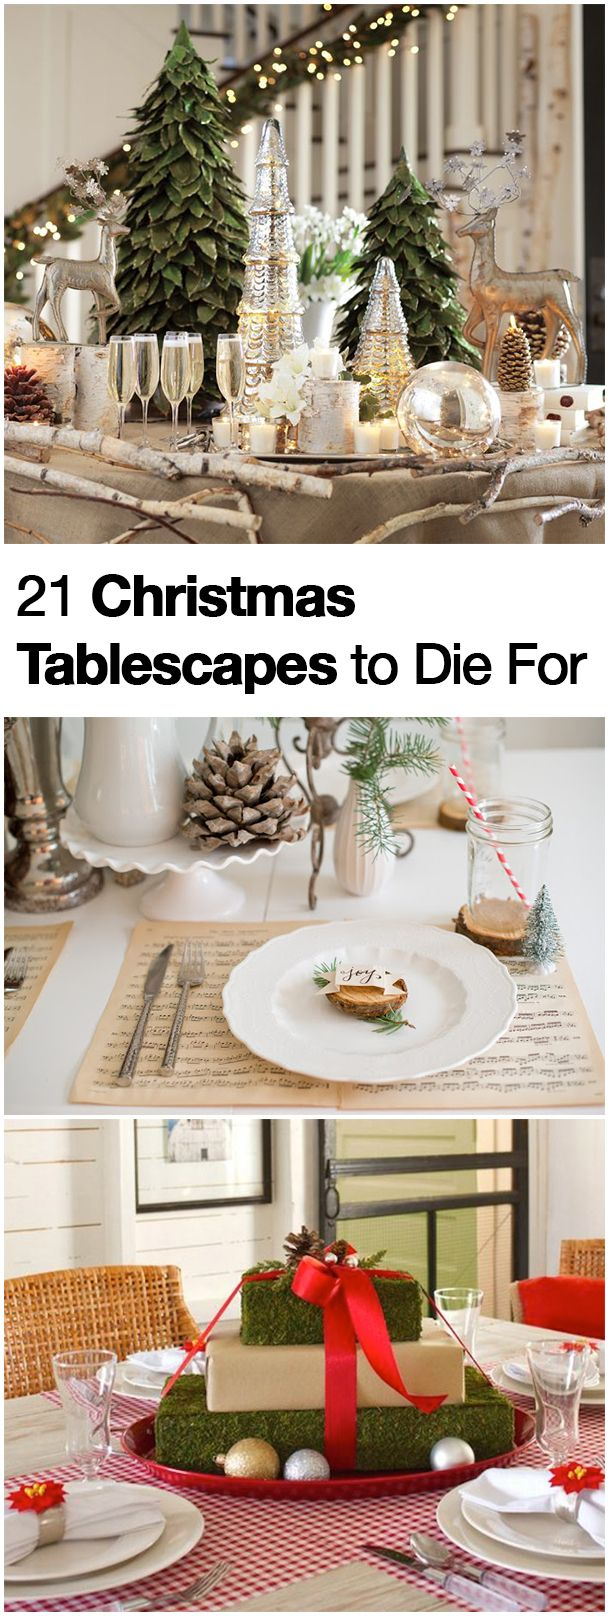 347 best christmas tabelscapes images on pinterest